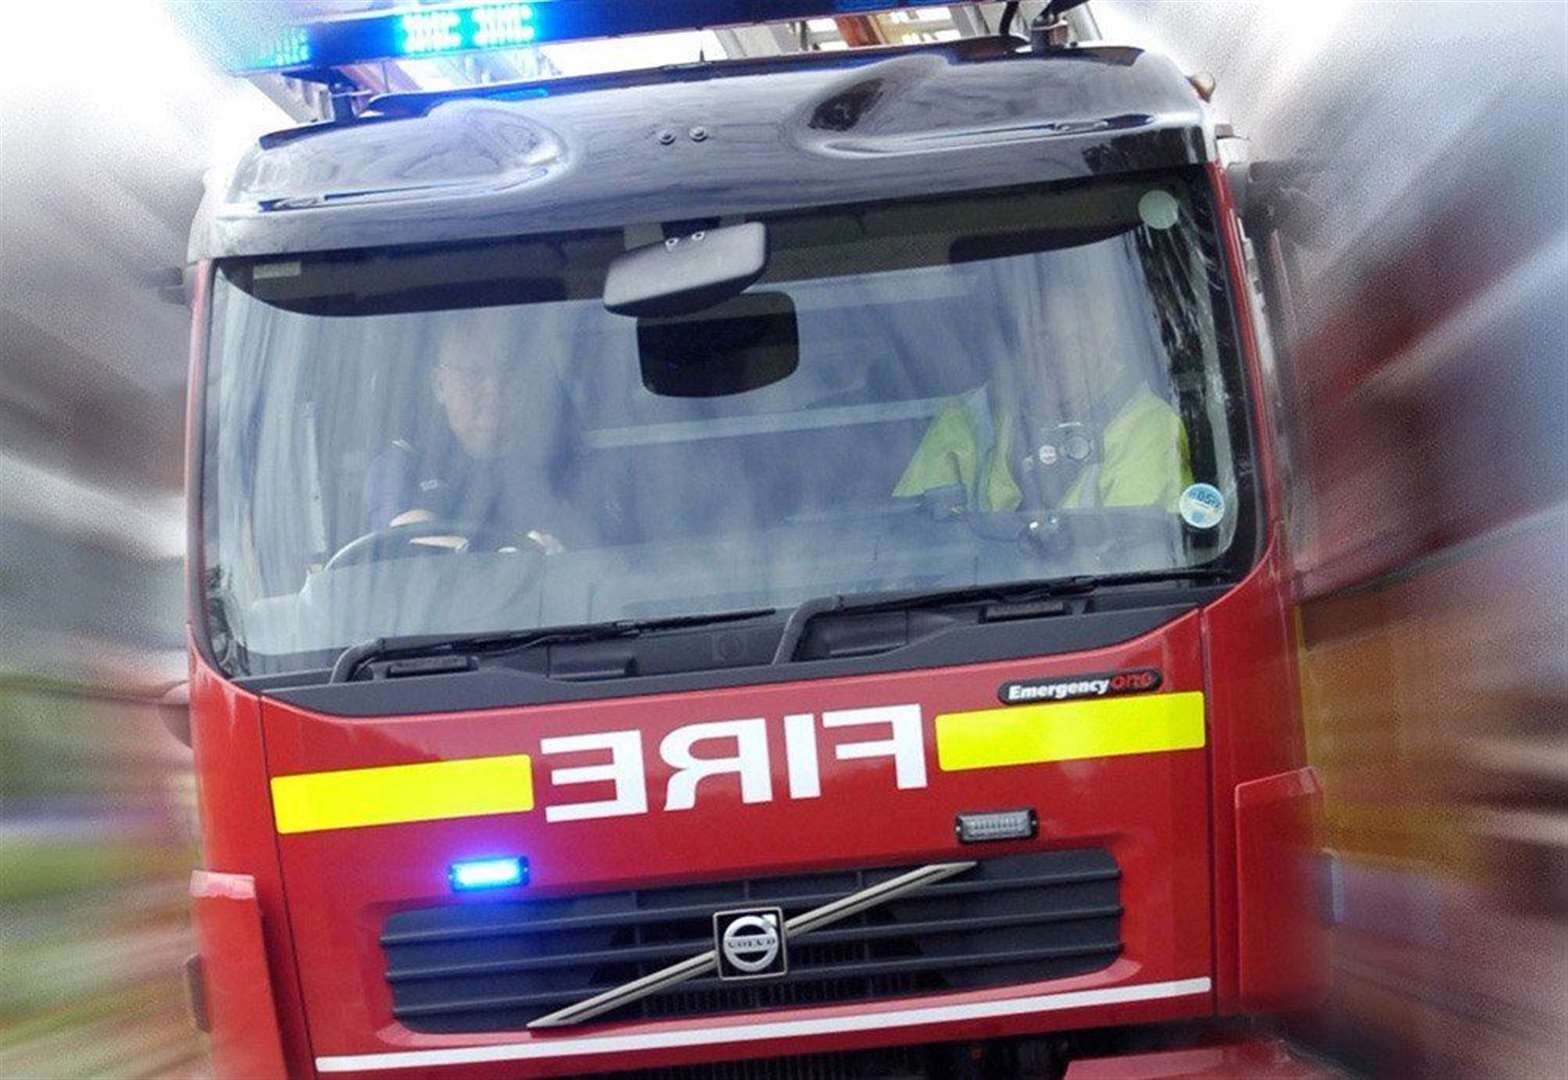 Firefighters called to house fire...but it was only cigarette smoke